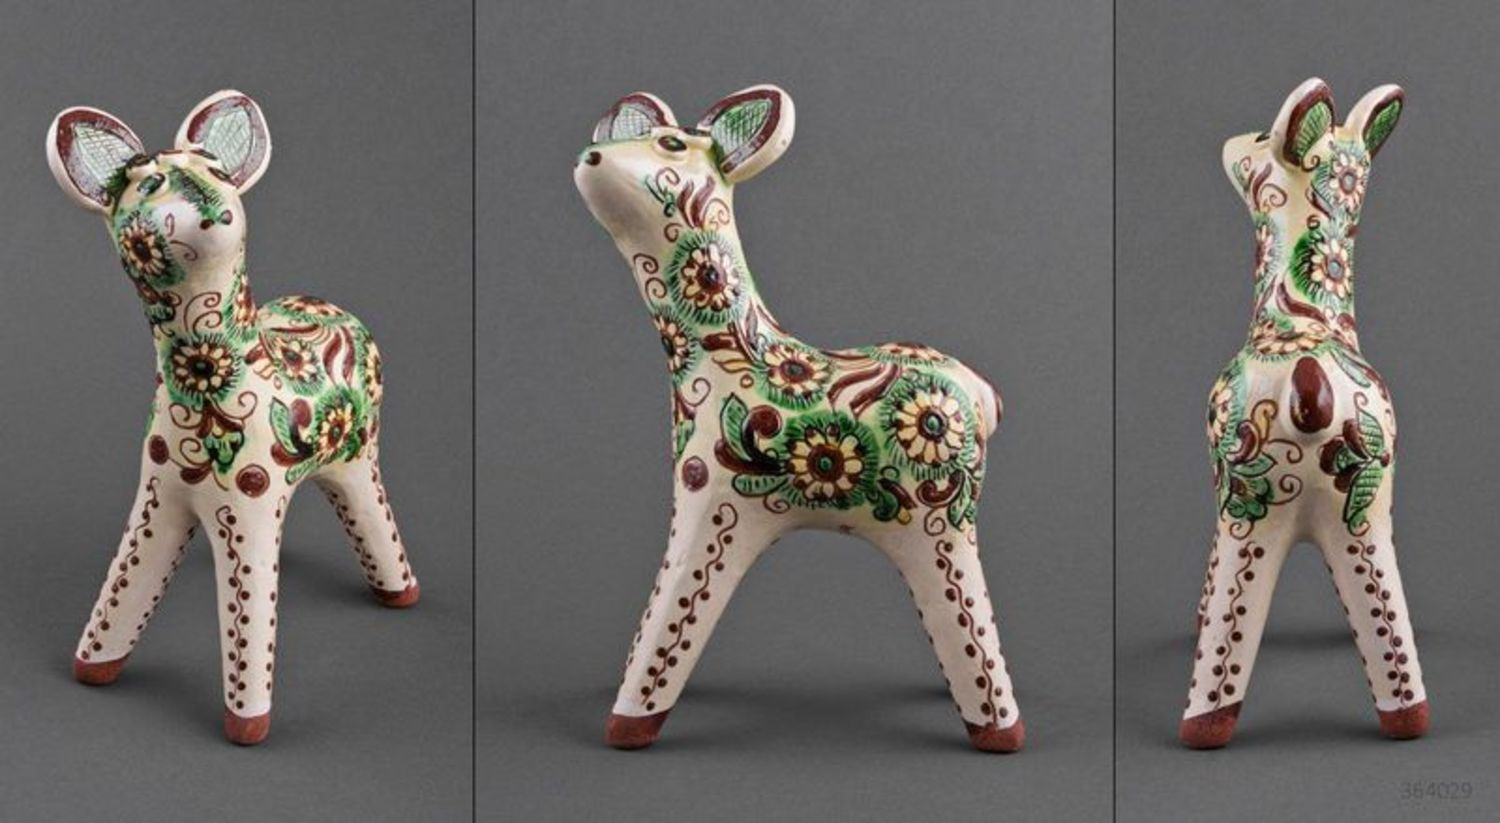 A set of clay figurines Baby Deers photo 2